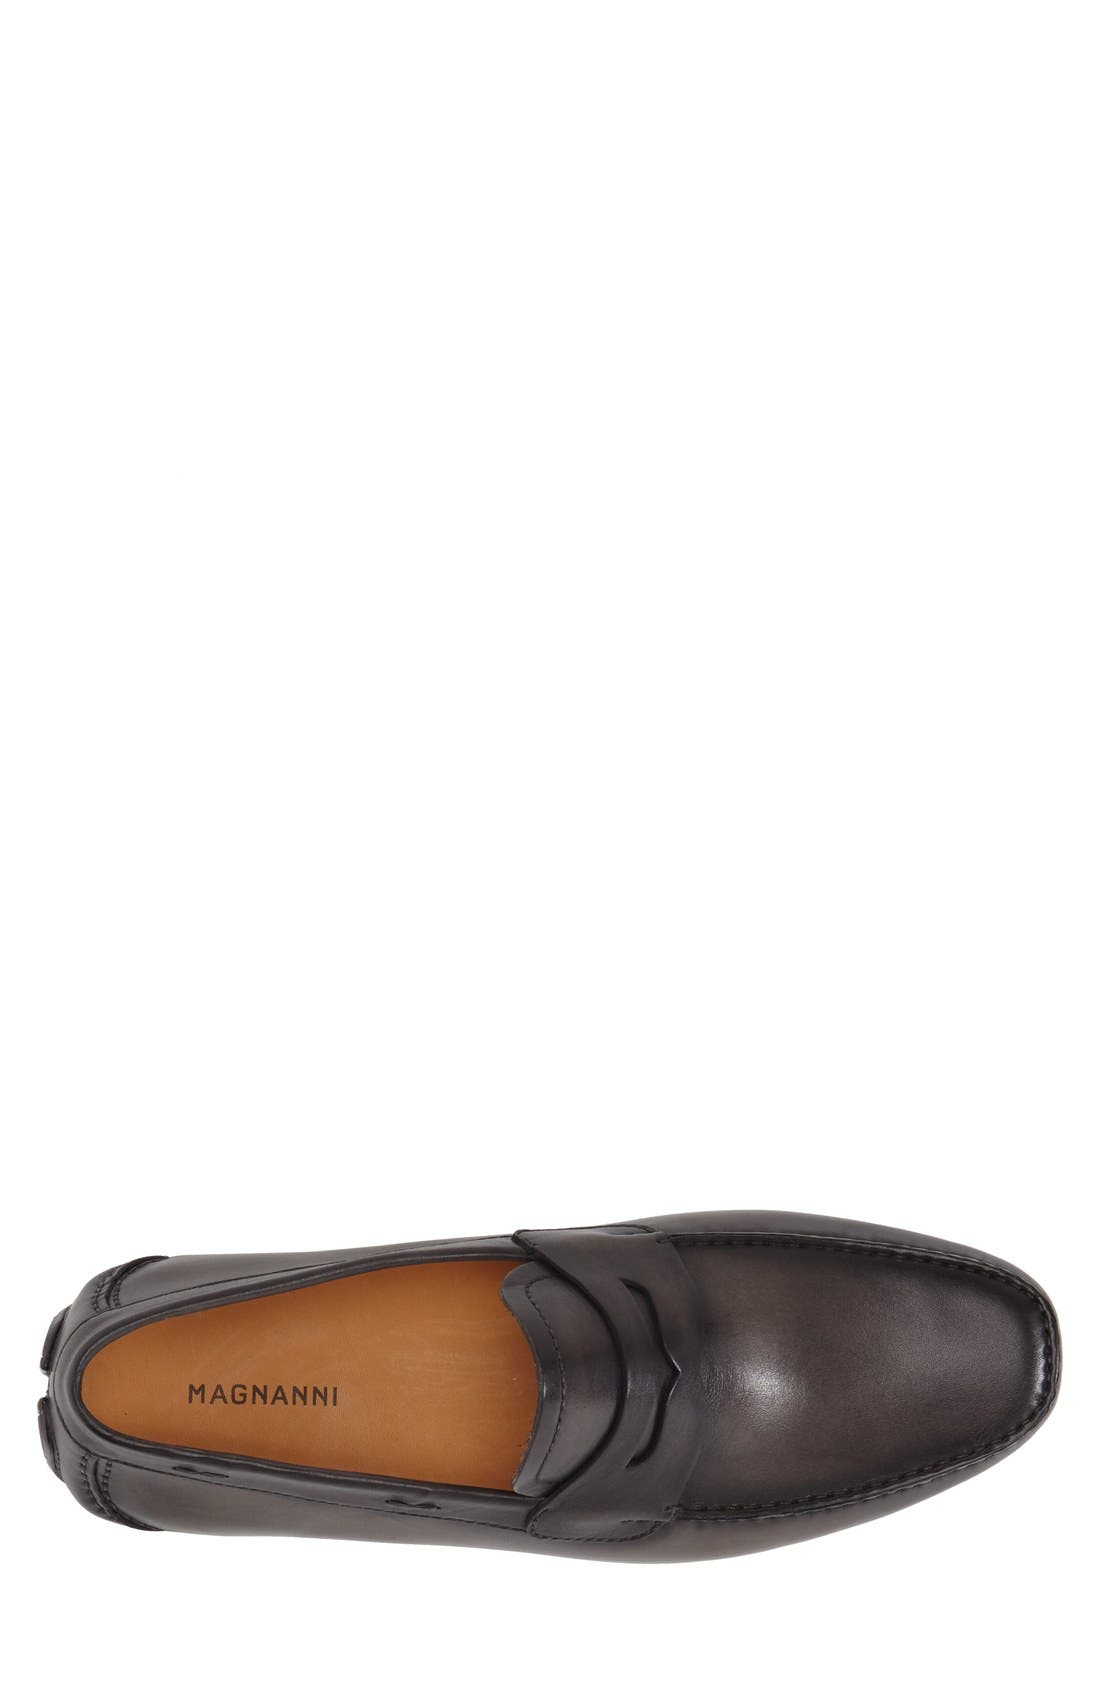 'Dylan' Leather Driving Shoe,                             Alternate thumbnail 20, color,